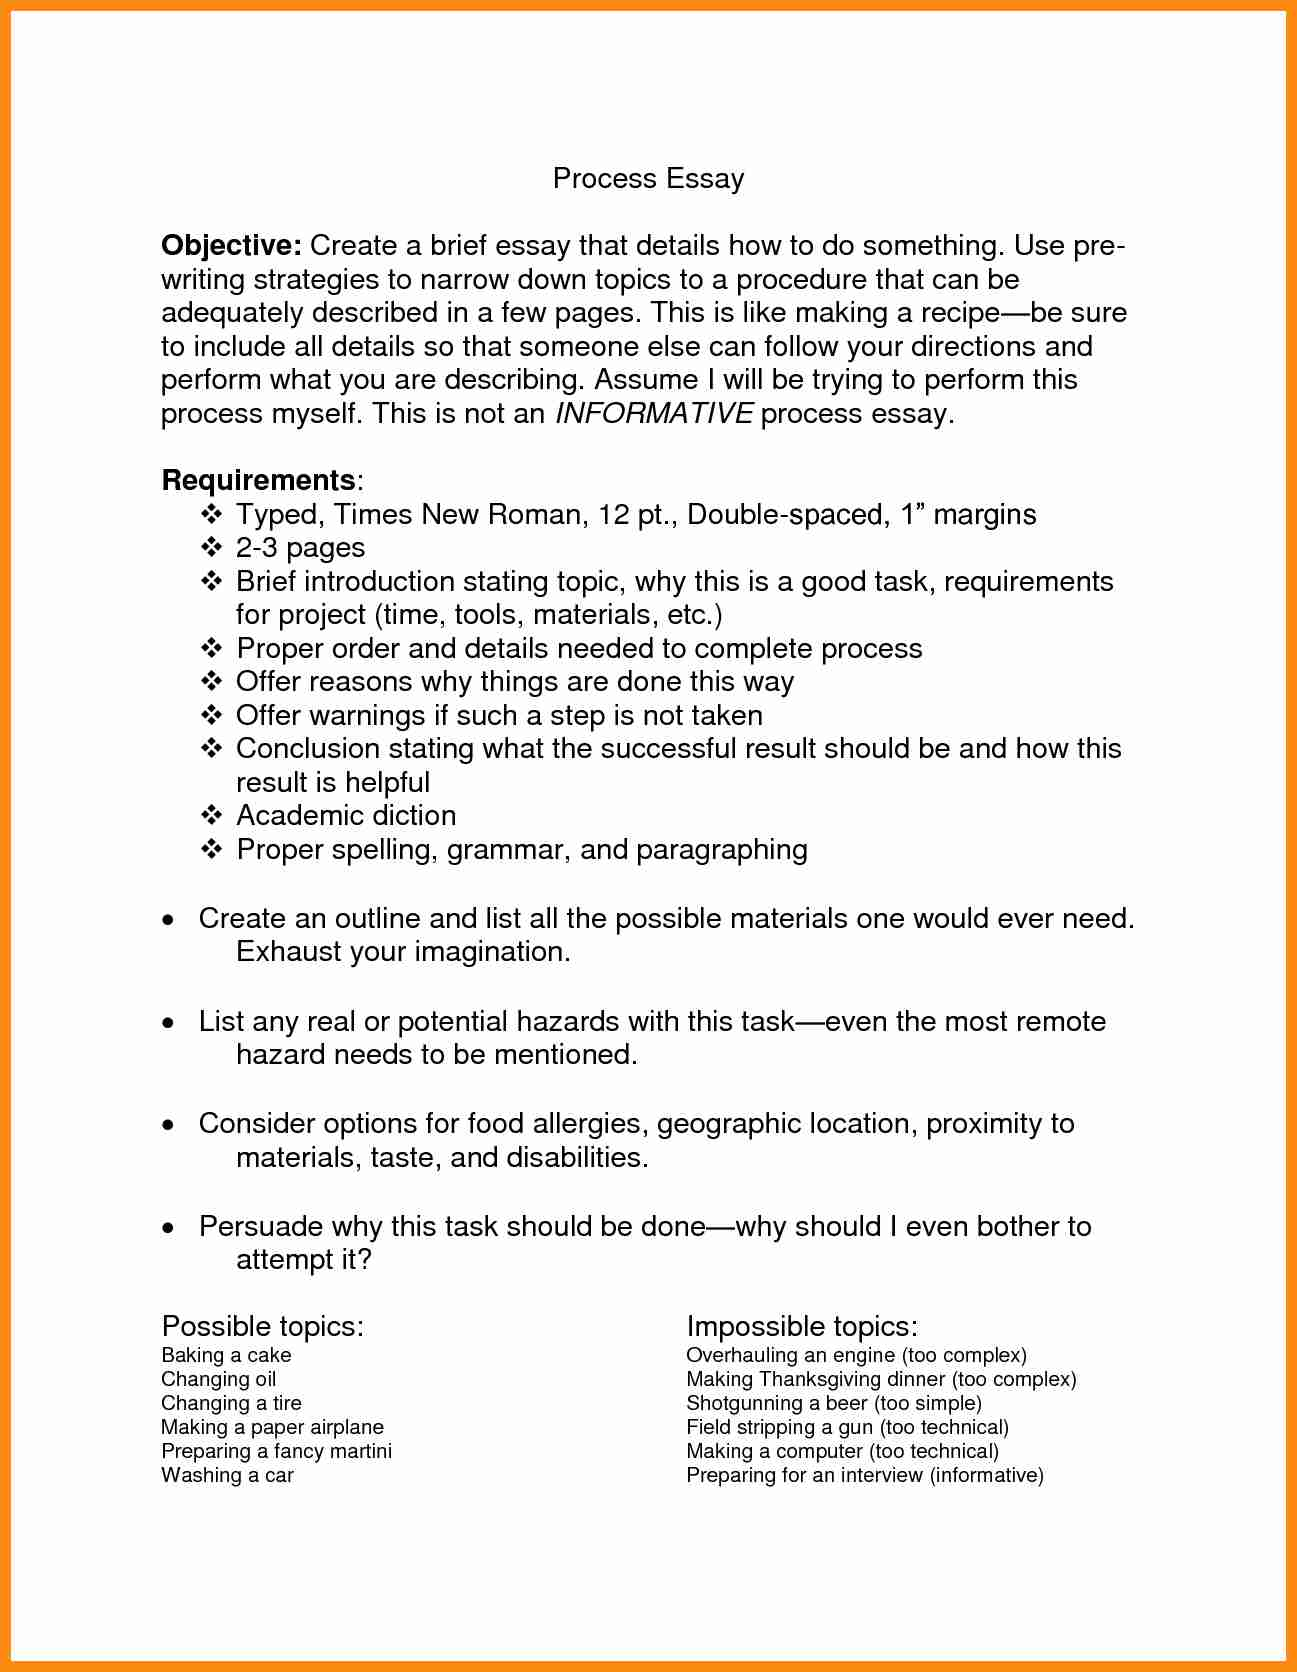 009 Informational Essay Outline Bestolutions Of Example Explanatoryample Career Interview Awesome Collection Process Essaysamples Unforgettable Rubric 4th Grade Informative Explanatory Definition Full